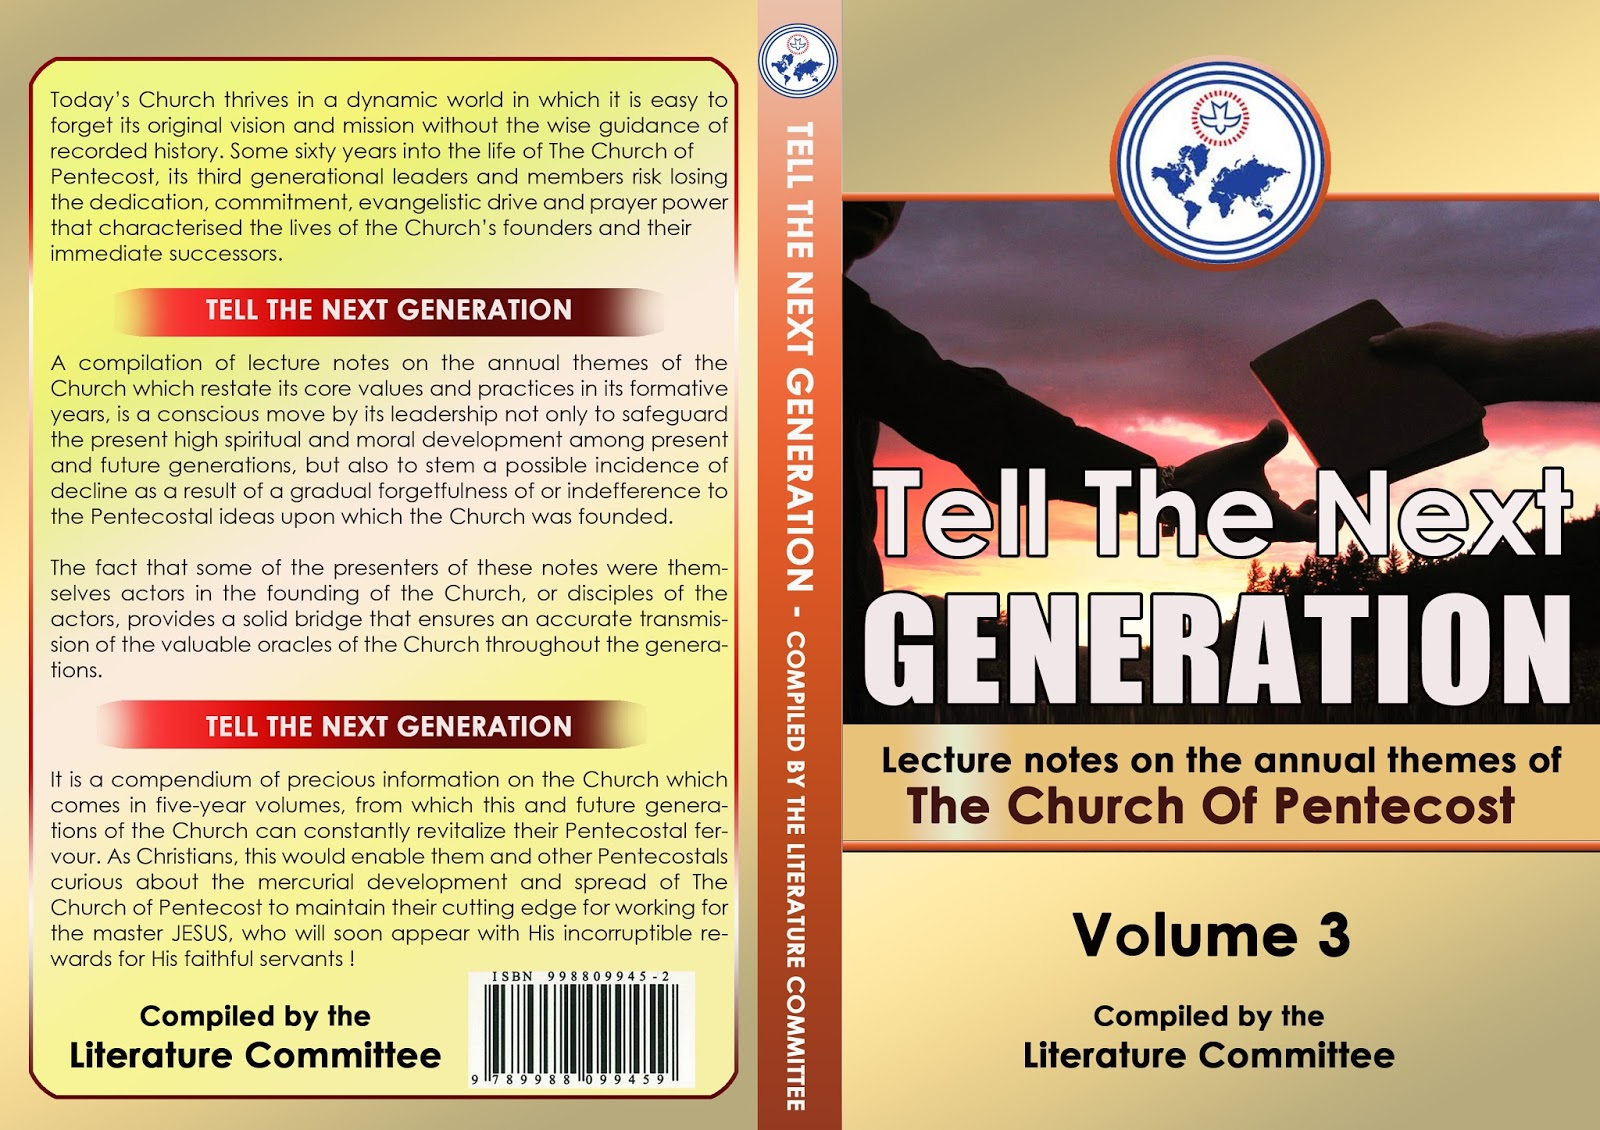 news from apostle ntumy have you heard of my new appointment the books entitled tell the next generation are now in three volumes volume 1 covers the themes from 1999 2003 volume 2 from 2004 2008 and volume 3